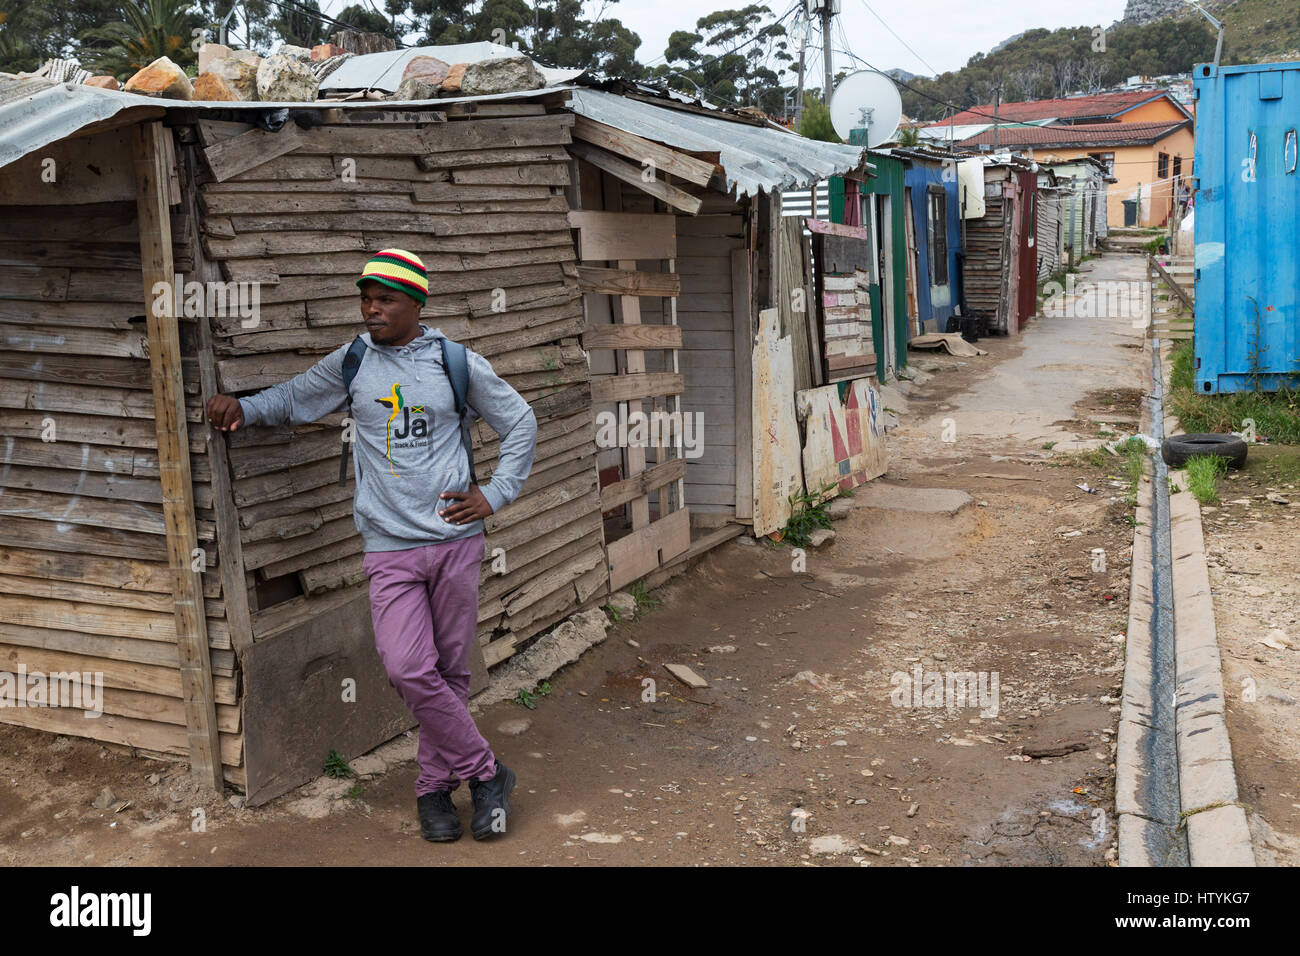 south-africa-townships-a-man-standing-in-the-street-imizamo-yethu-HTYKG7.jpg